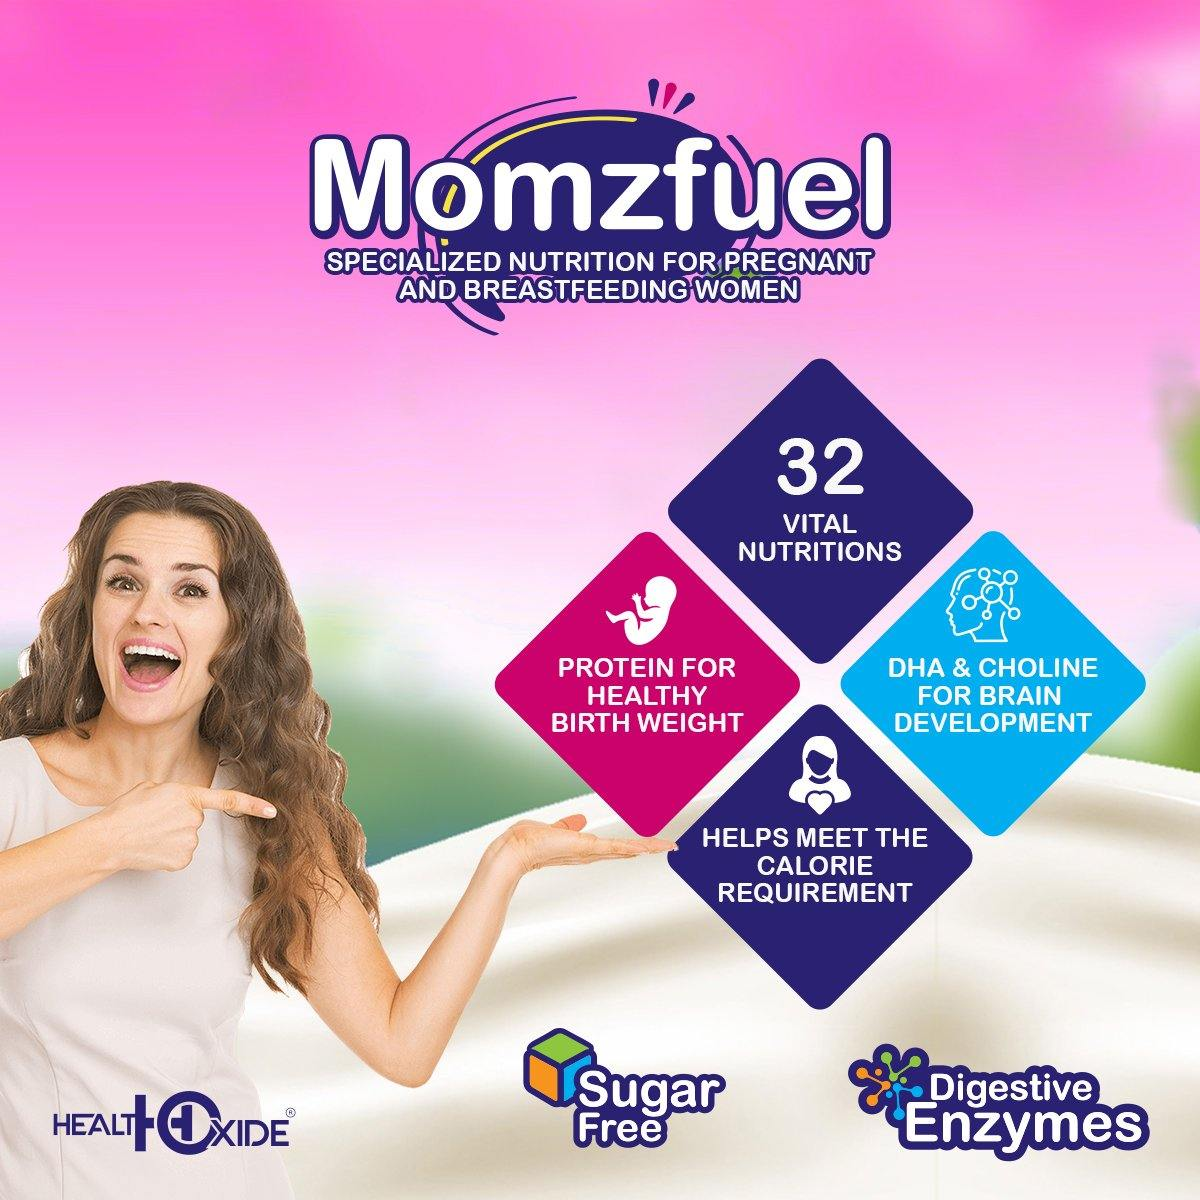 Momzfuel - High Protein for pregnant and breastfeeding and active women (200g, Chocolate Flavor) - HealthOxide